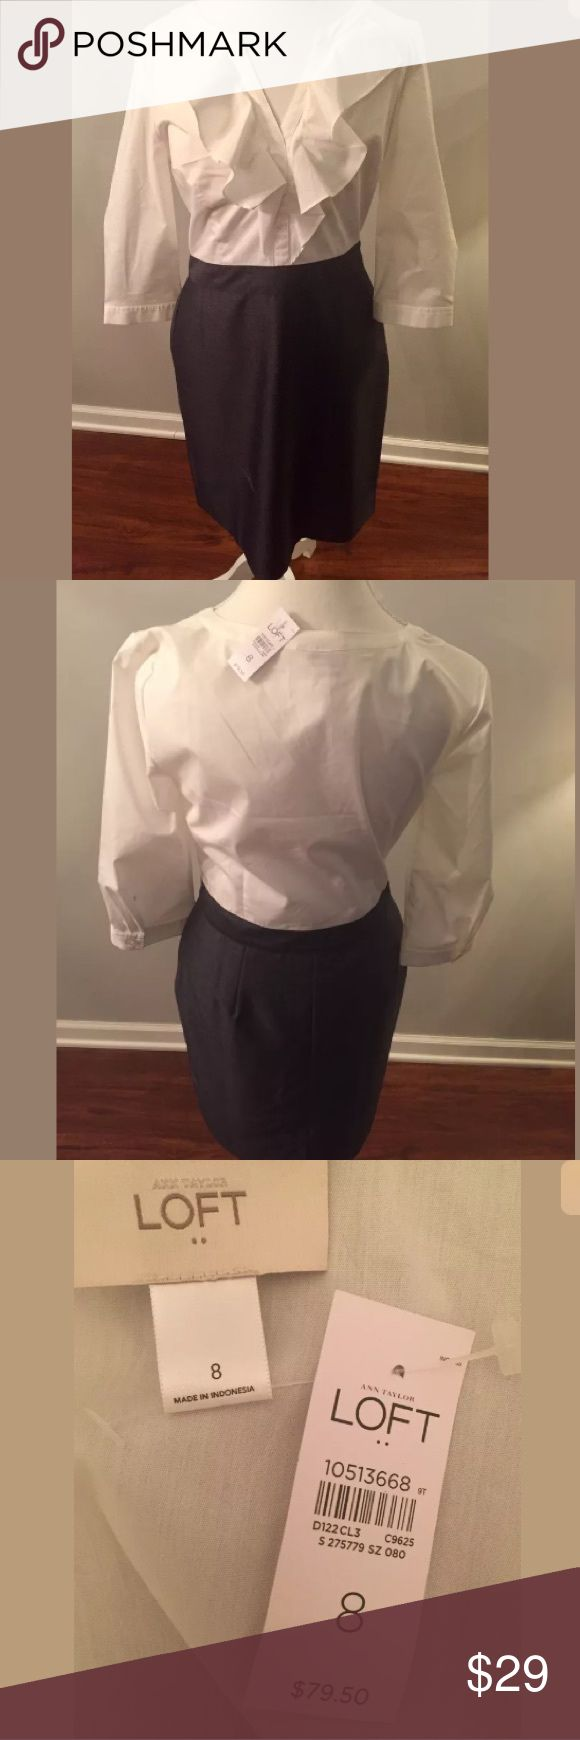 NWT Ann Taylor LOFT Career Dress New with tags! Ann Taylor LOFT career dress. Women's size 8. White ruffle cotton-blend top with dark gray pencil skirt look at bottom. Very classy. Comes from a smoke free and pet free home. LOFT Dresses Long Sleeve